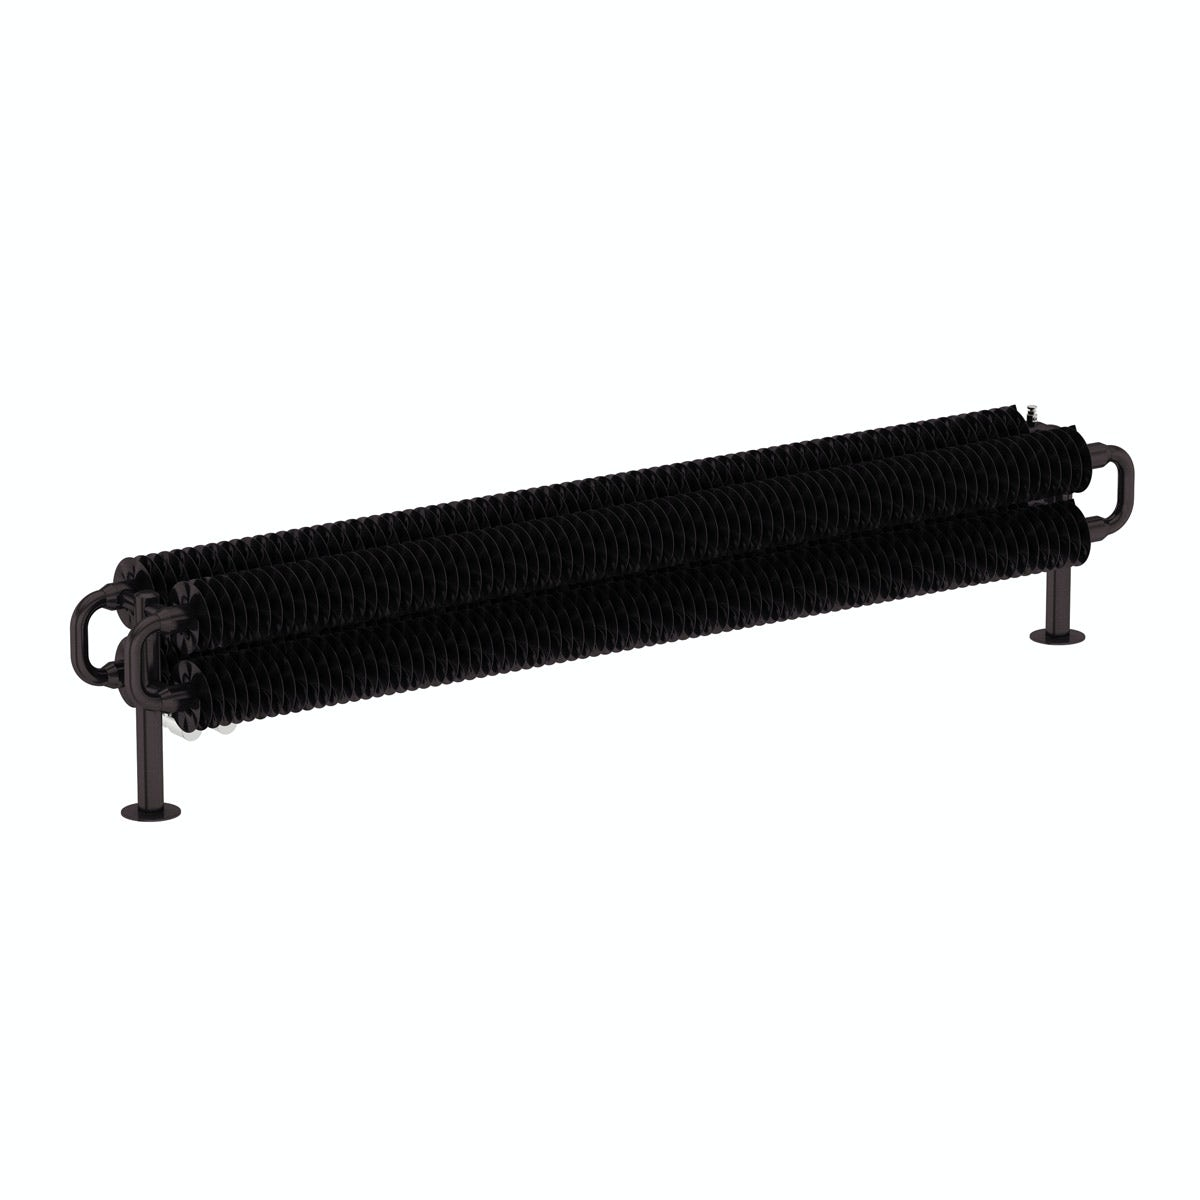 Terma Ribbon meteor black horizontal radiator 190 x 1540